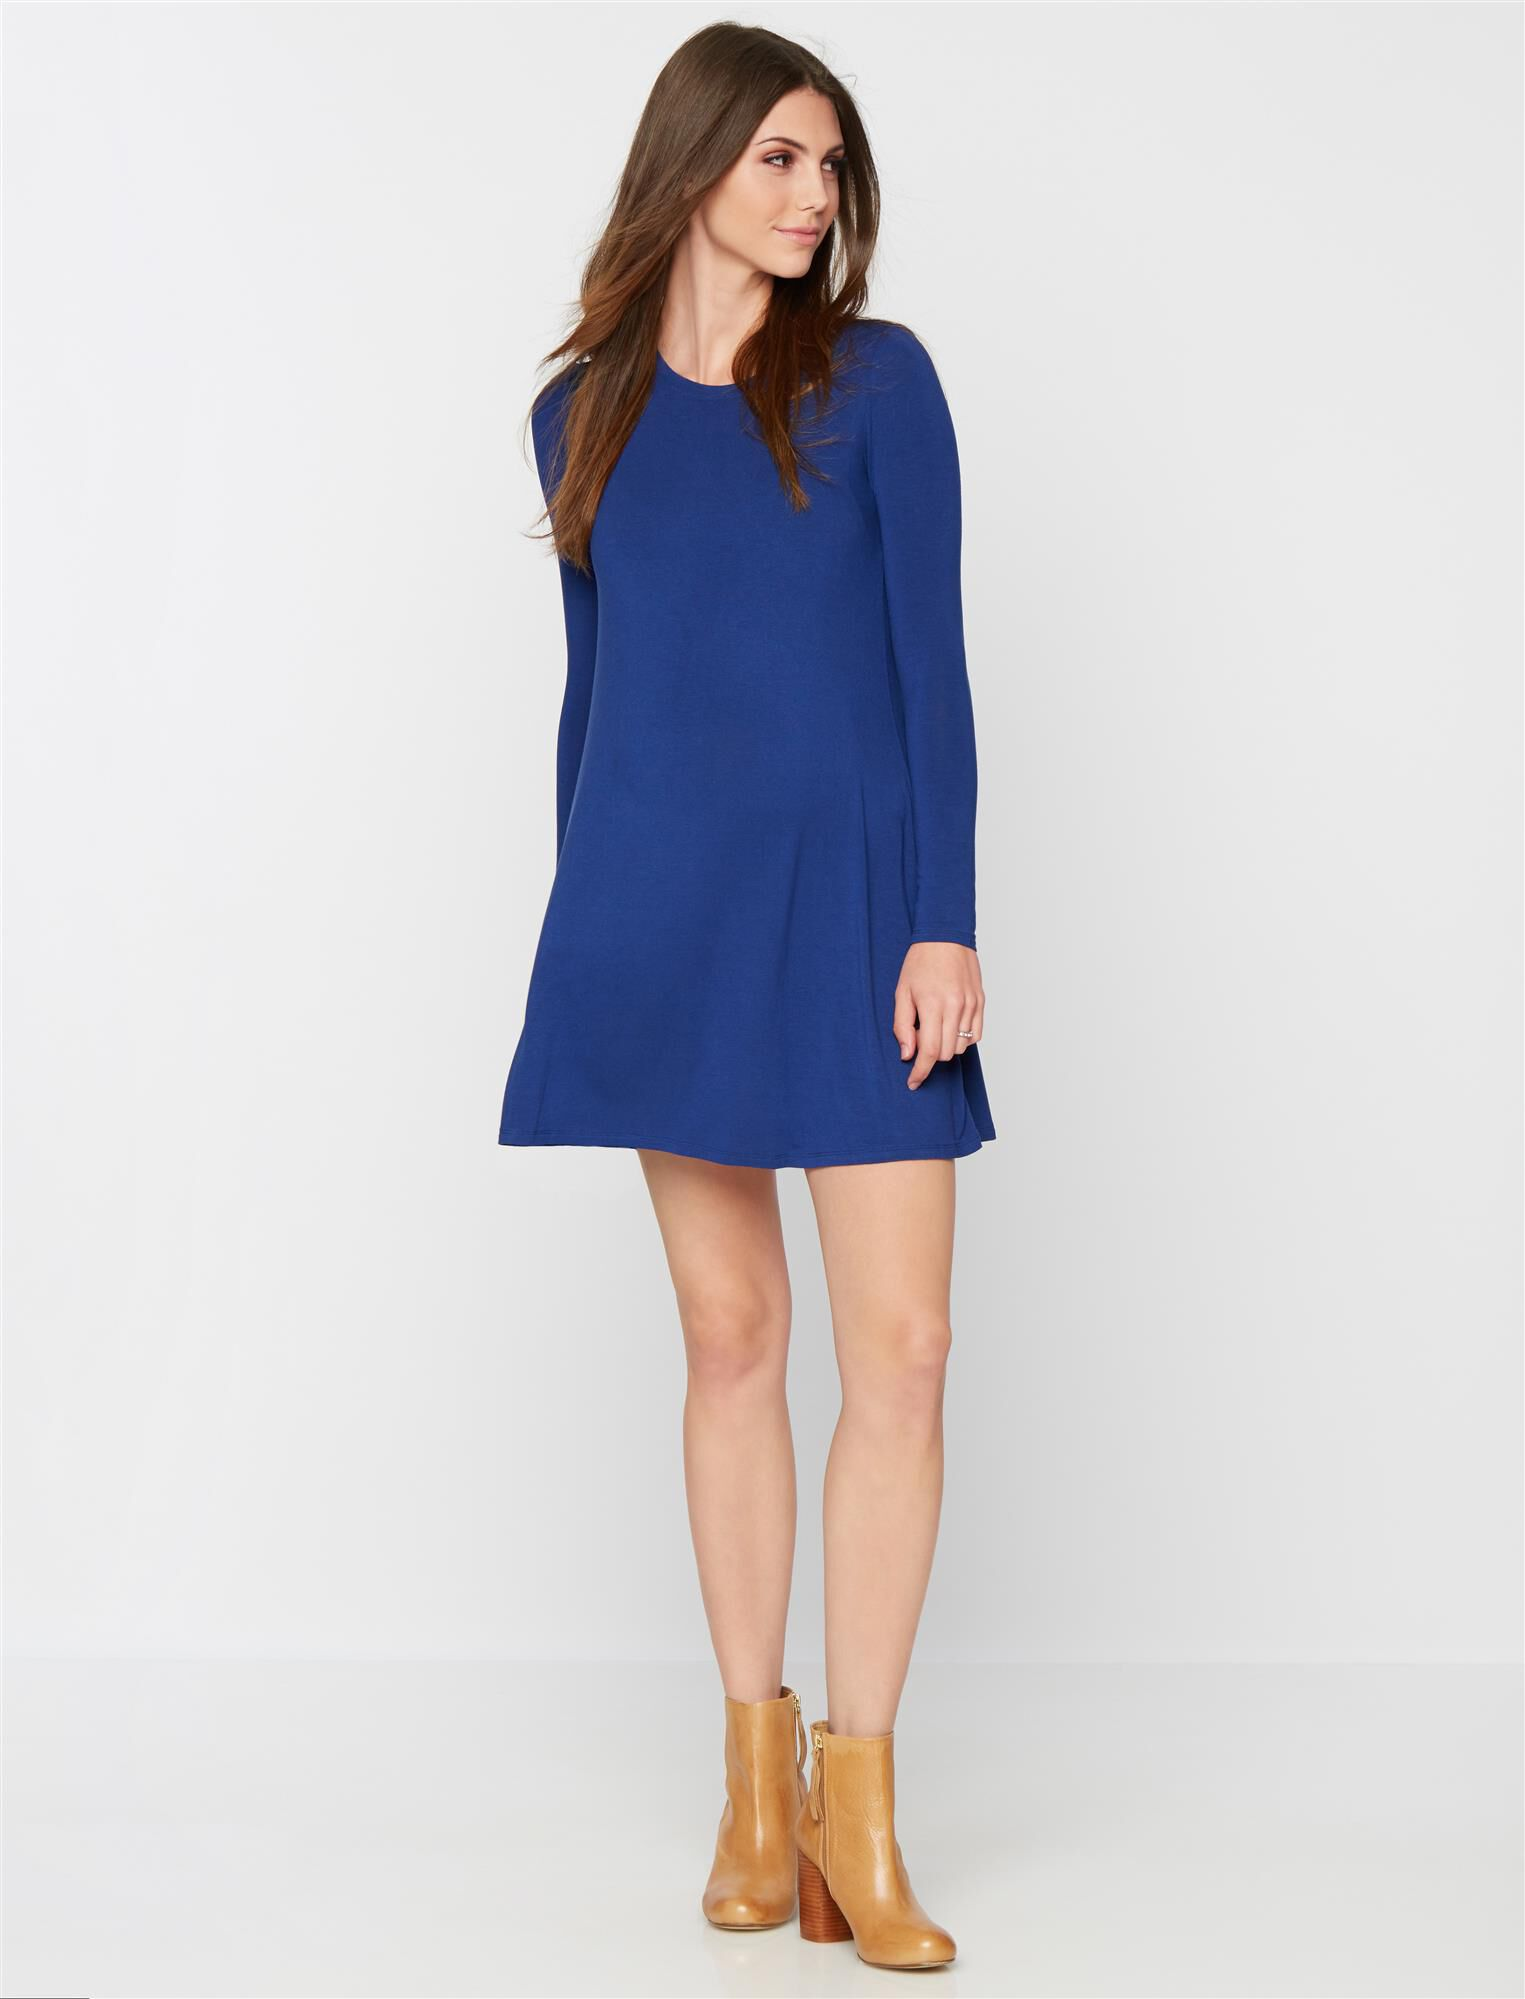 Bcbg Max Azria Jeanna Maternity Dress